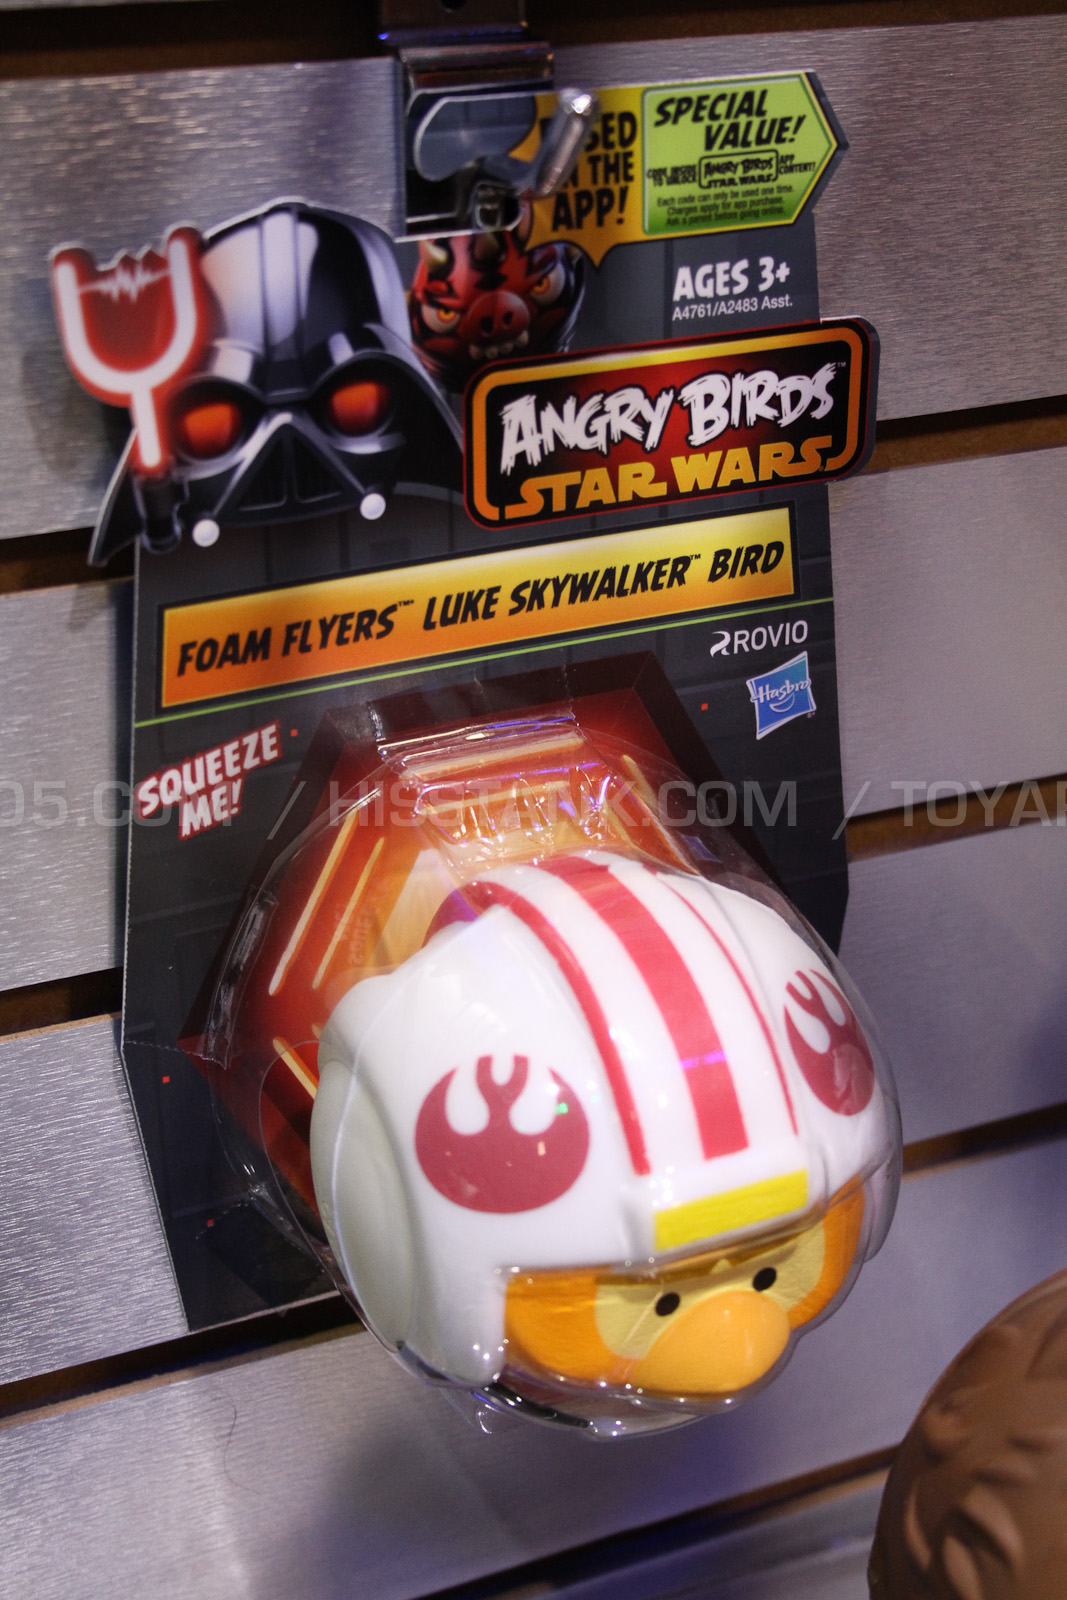 Angry Birds Star Wars Toys : Angry birds star wars toys from toy fair the toyark